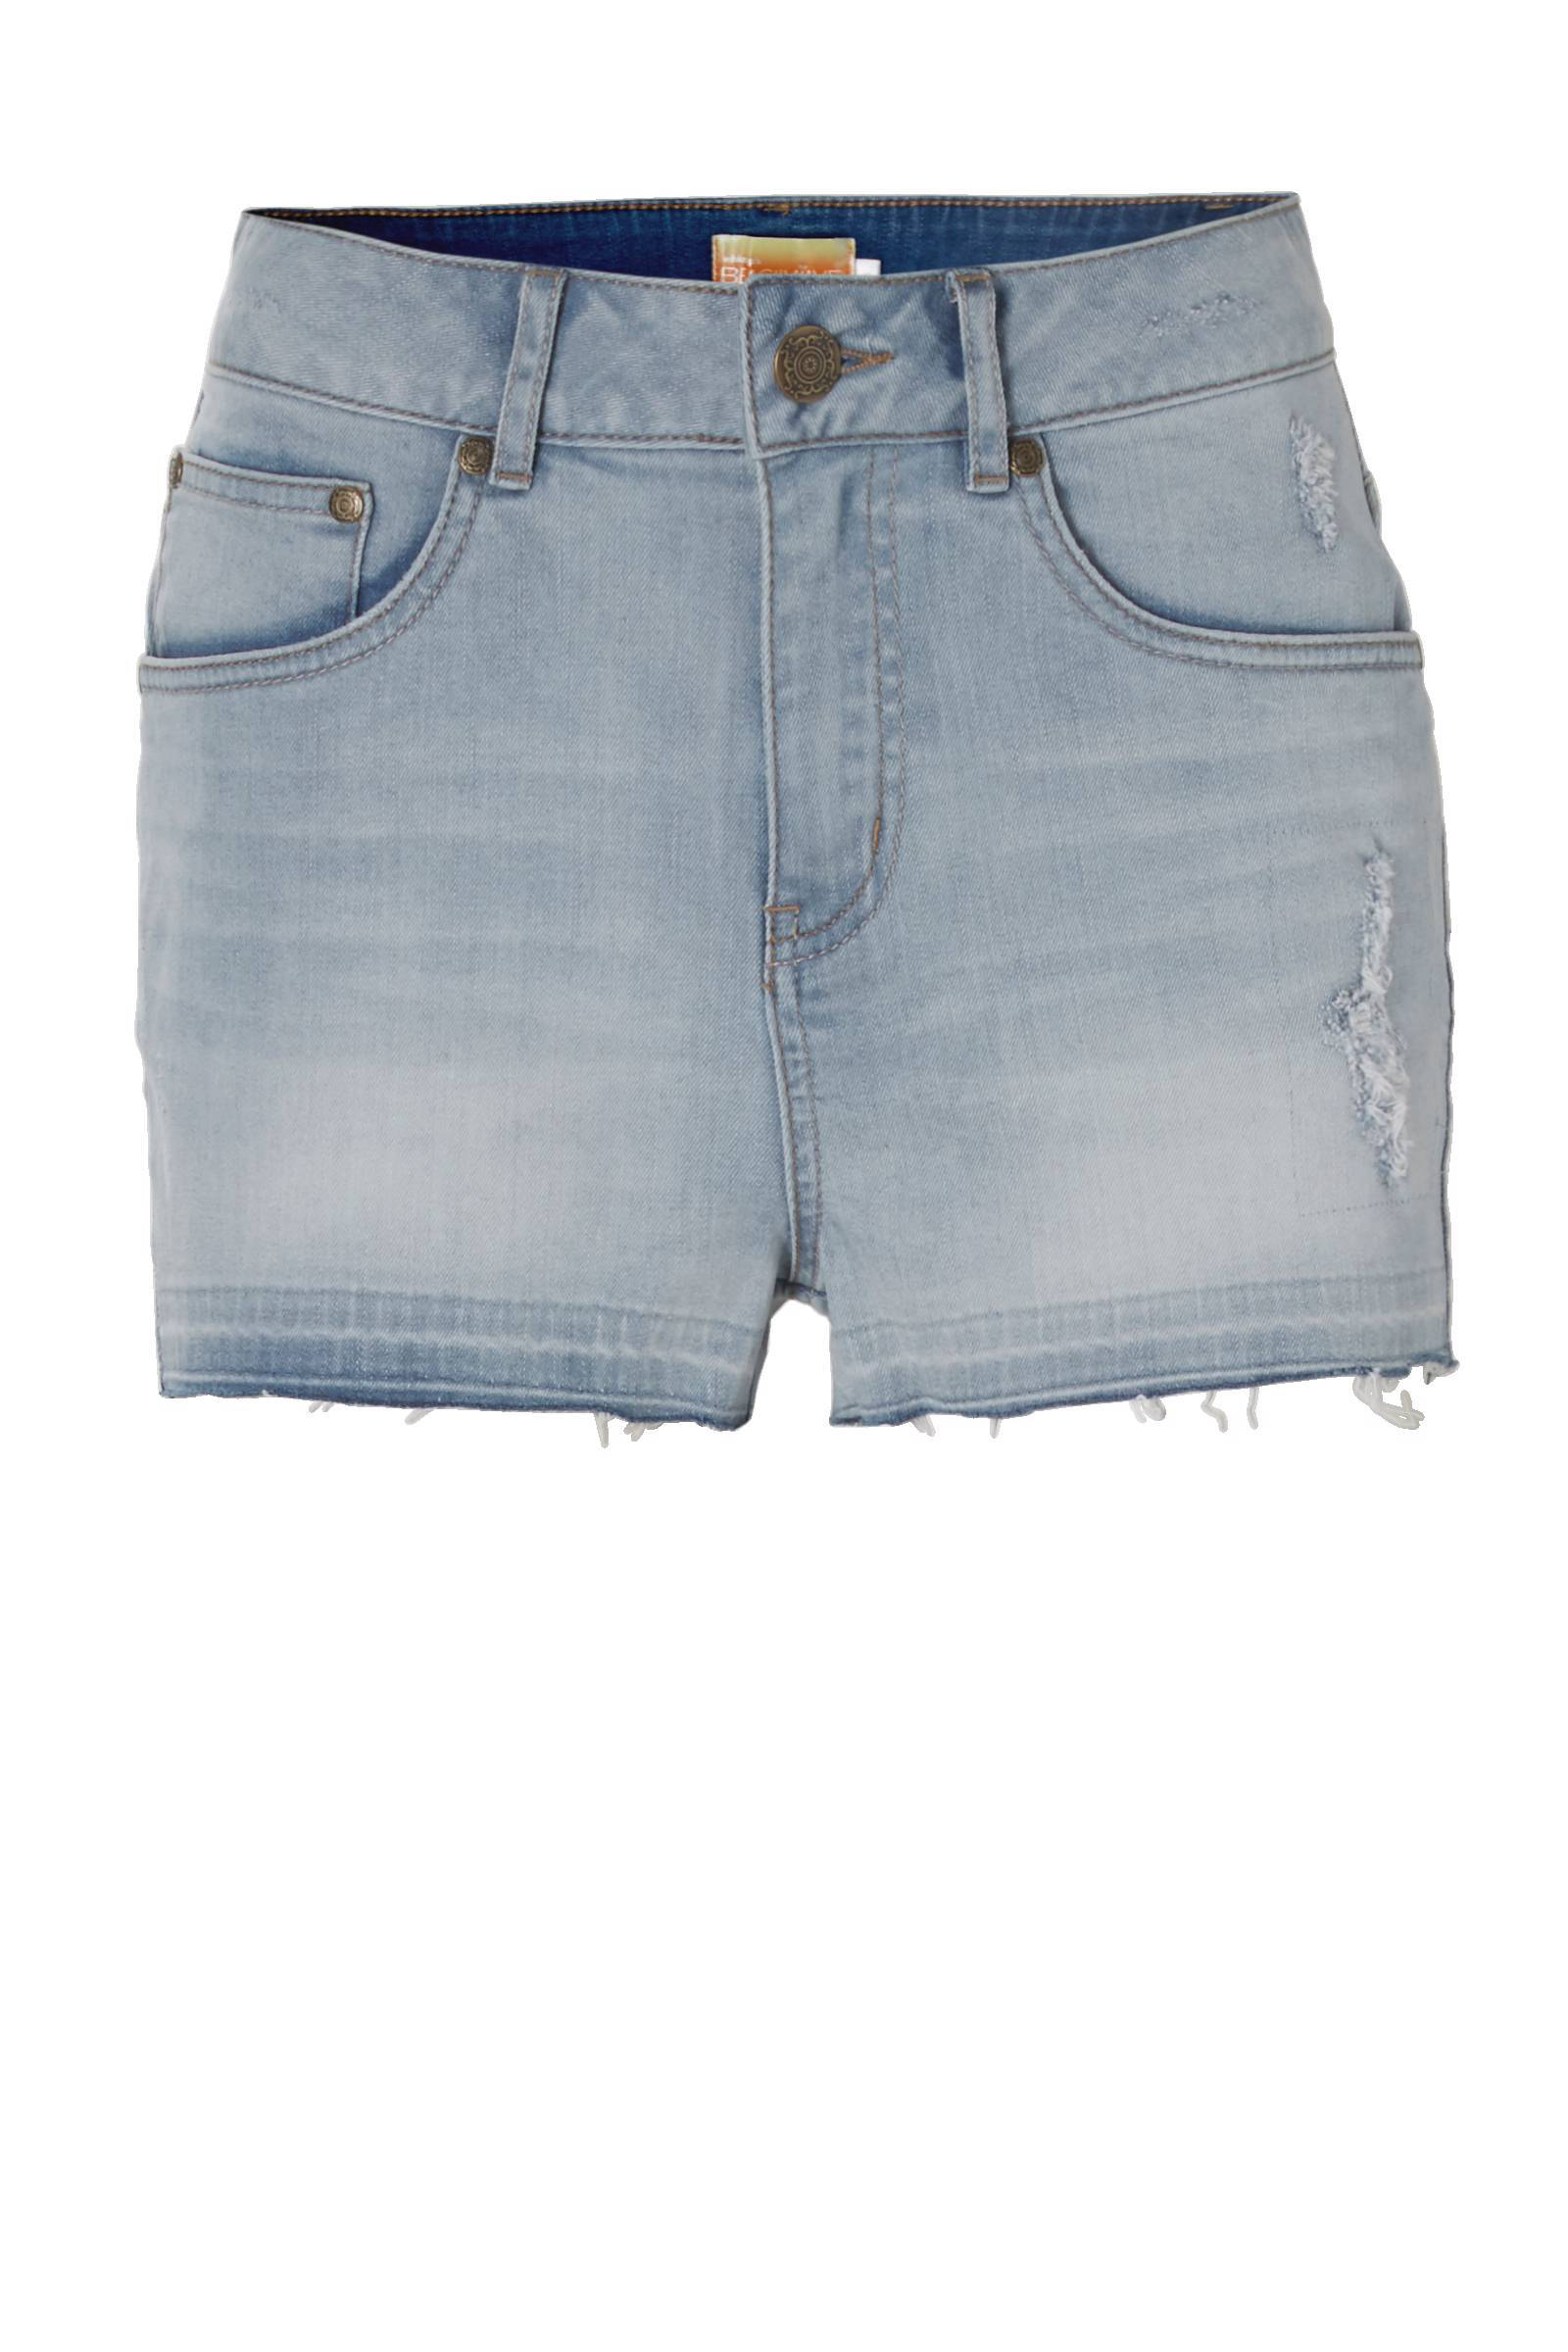 whkmp's beachwave high waist denim short (dames)